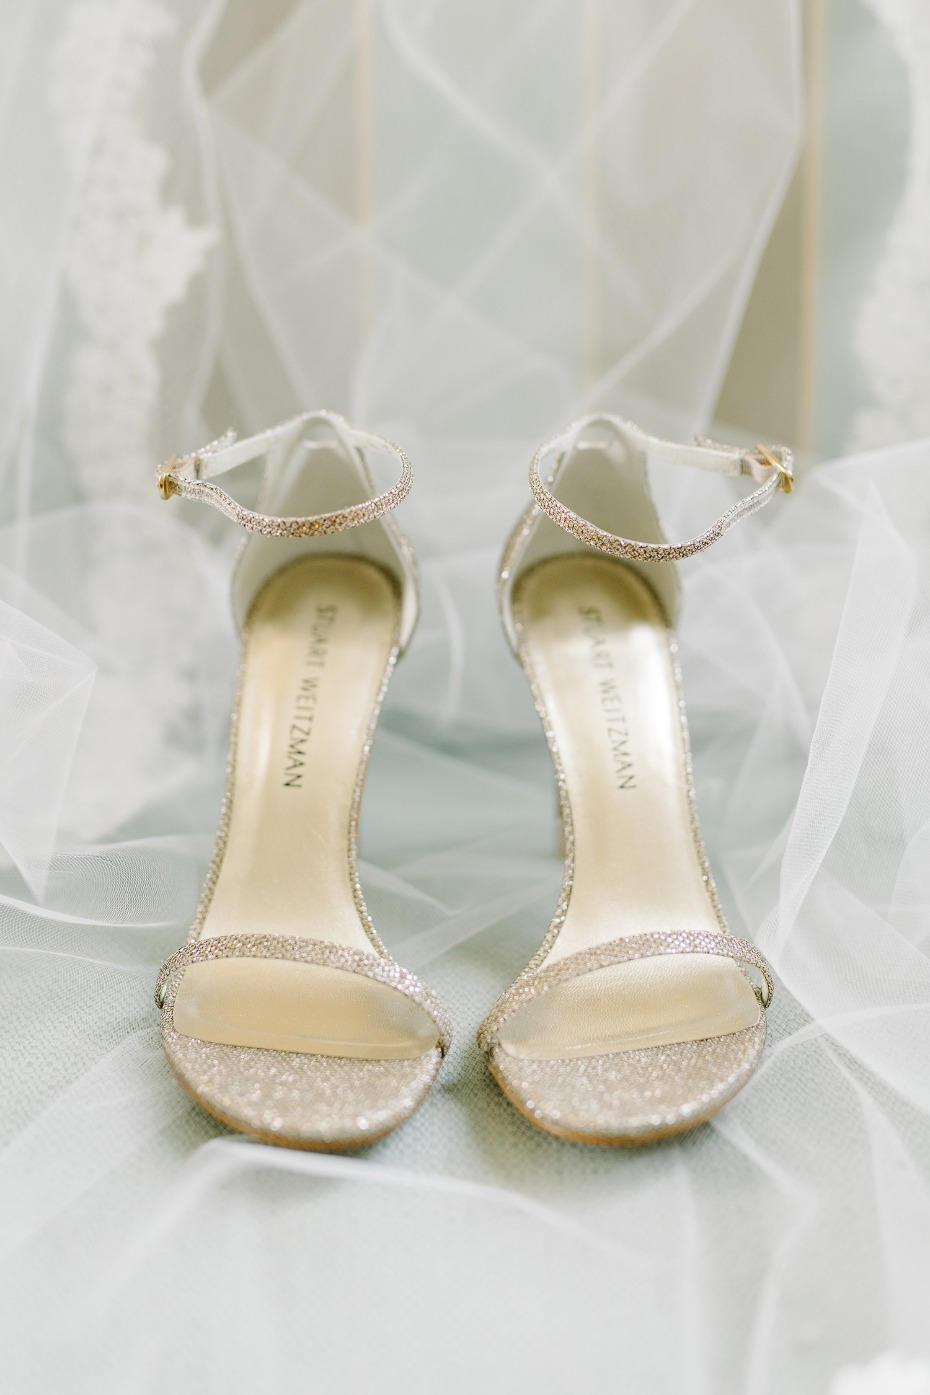 Sparkly gold heels for the bride